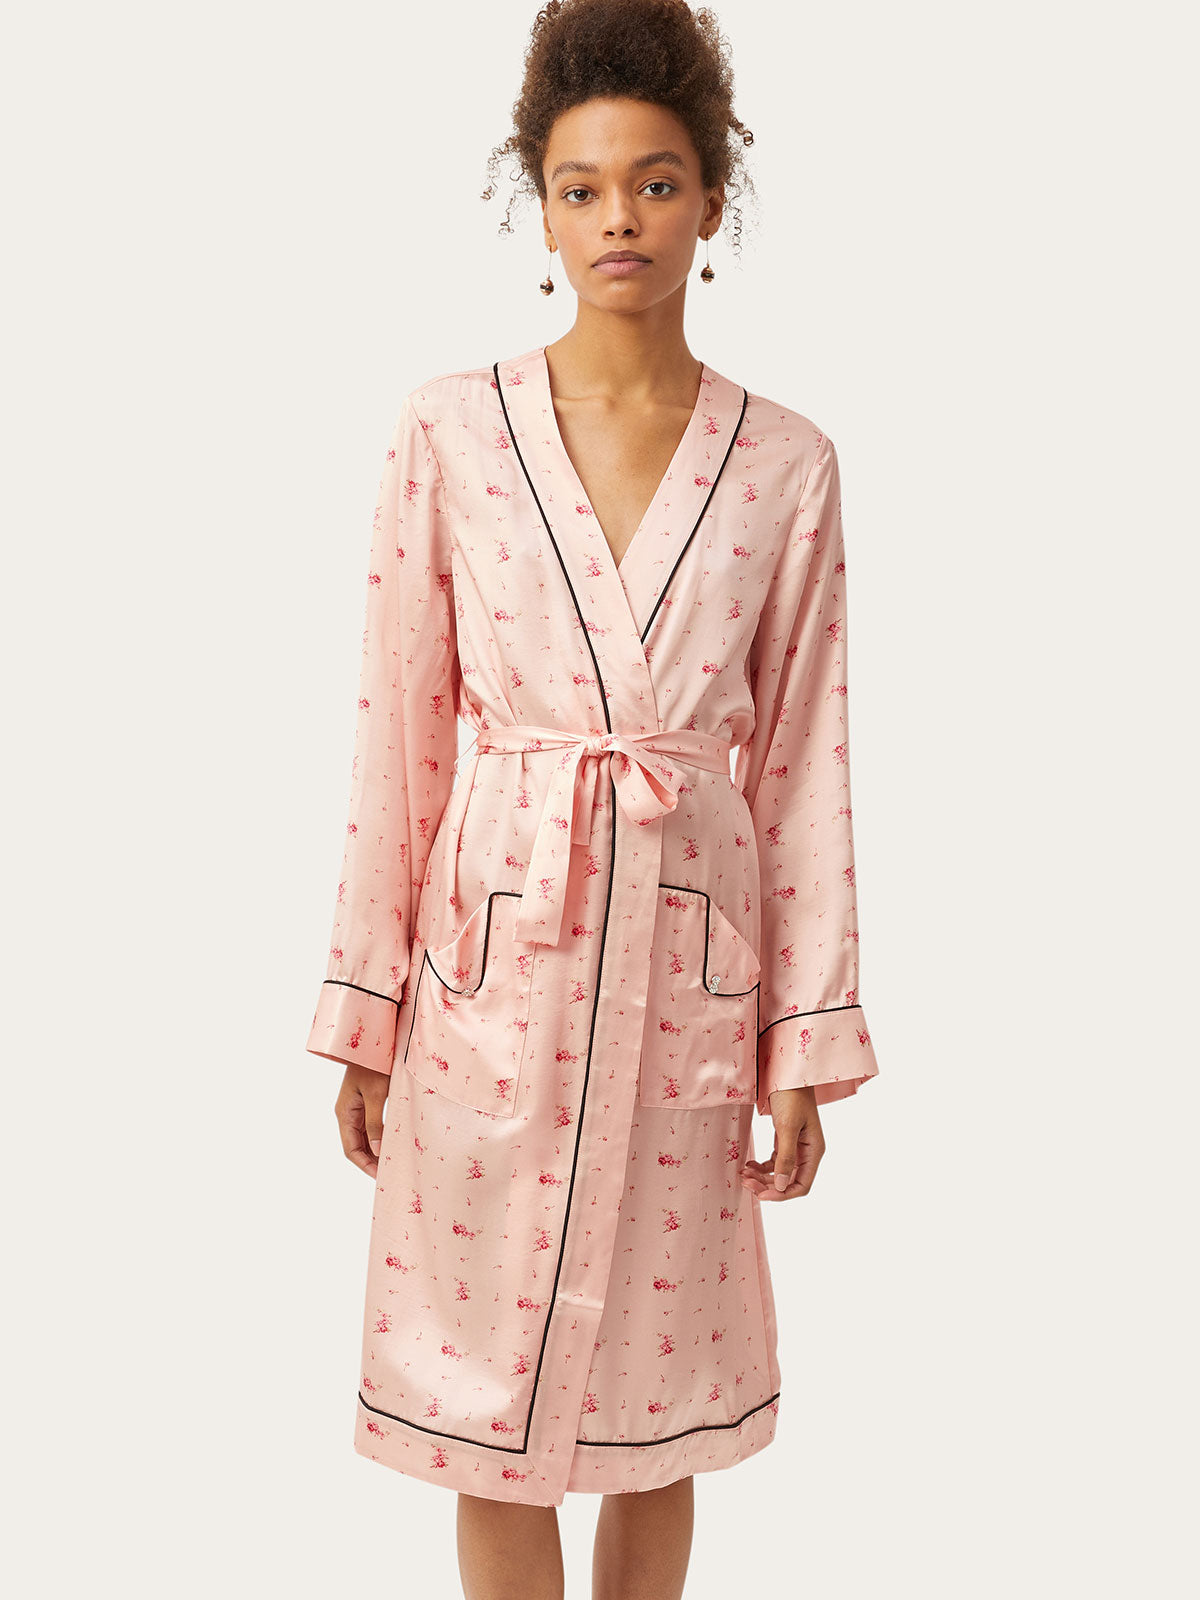 Ophelia Robe in Pale Blush By Morgan Lane